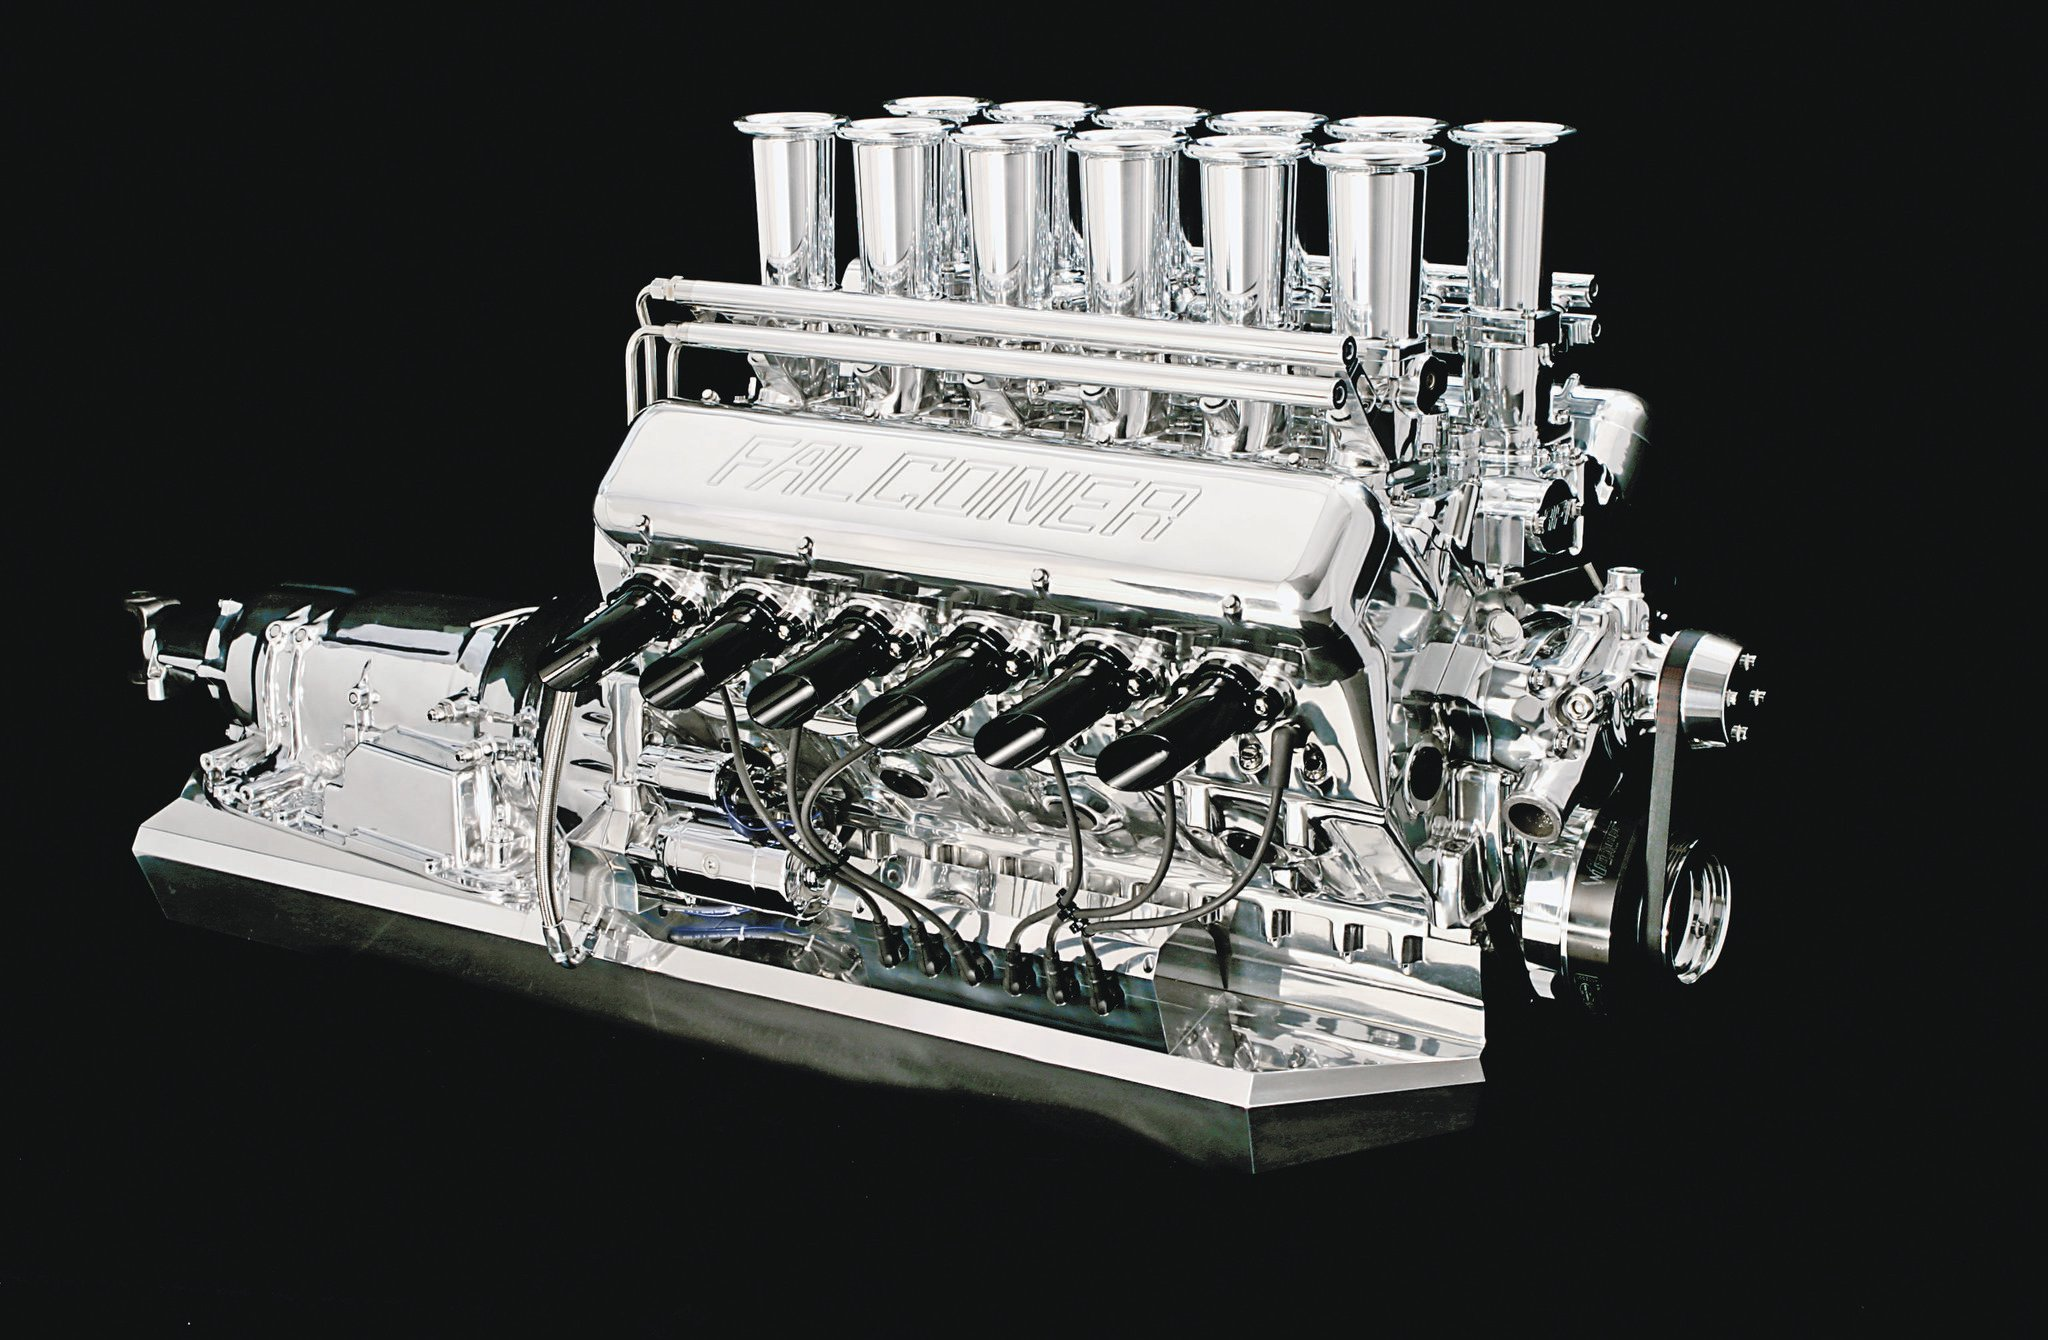 This Falconer V12 has nonstandard wet-sump oiling. Chip Foose currently has this engine at his shop. The engine oil pan, 4L80E trans pan, and the converter cover are three massive slabs of billet aluminum. Engine wiring routes through the oil pan's sides and is terminated with two Canon plugs. The extra fuel-rail really contains the injector wiring and connectors.